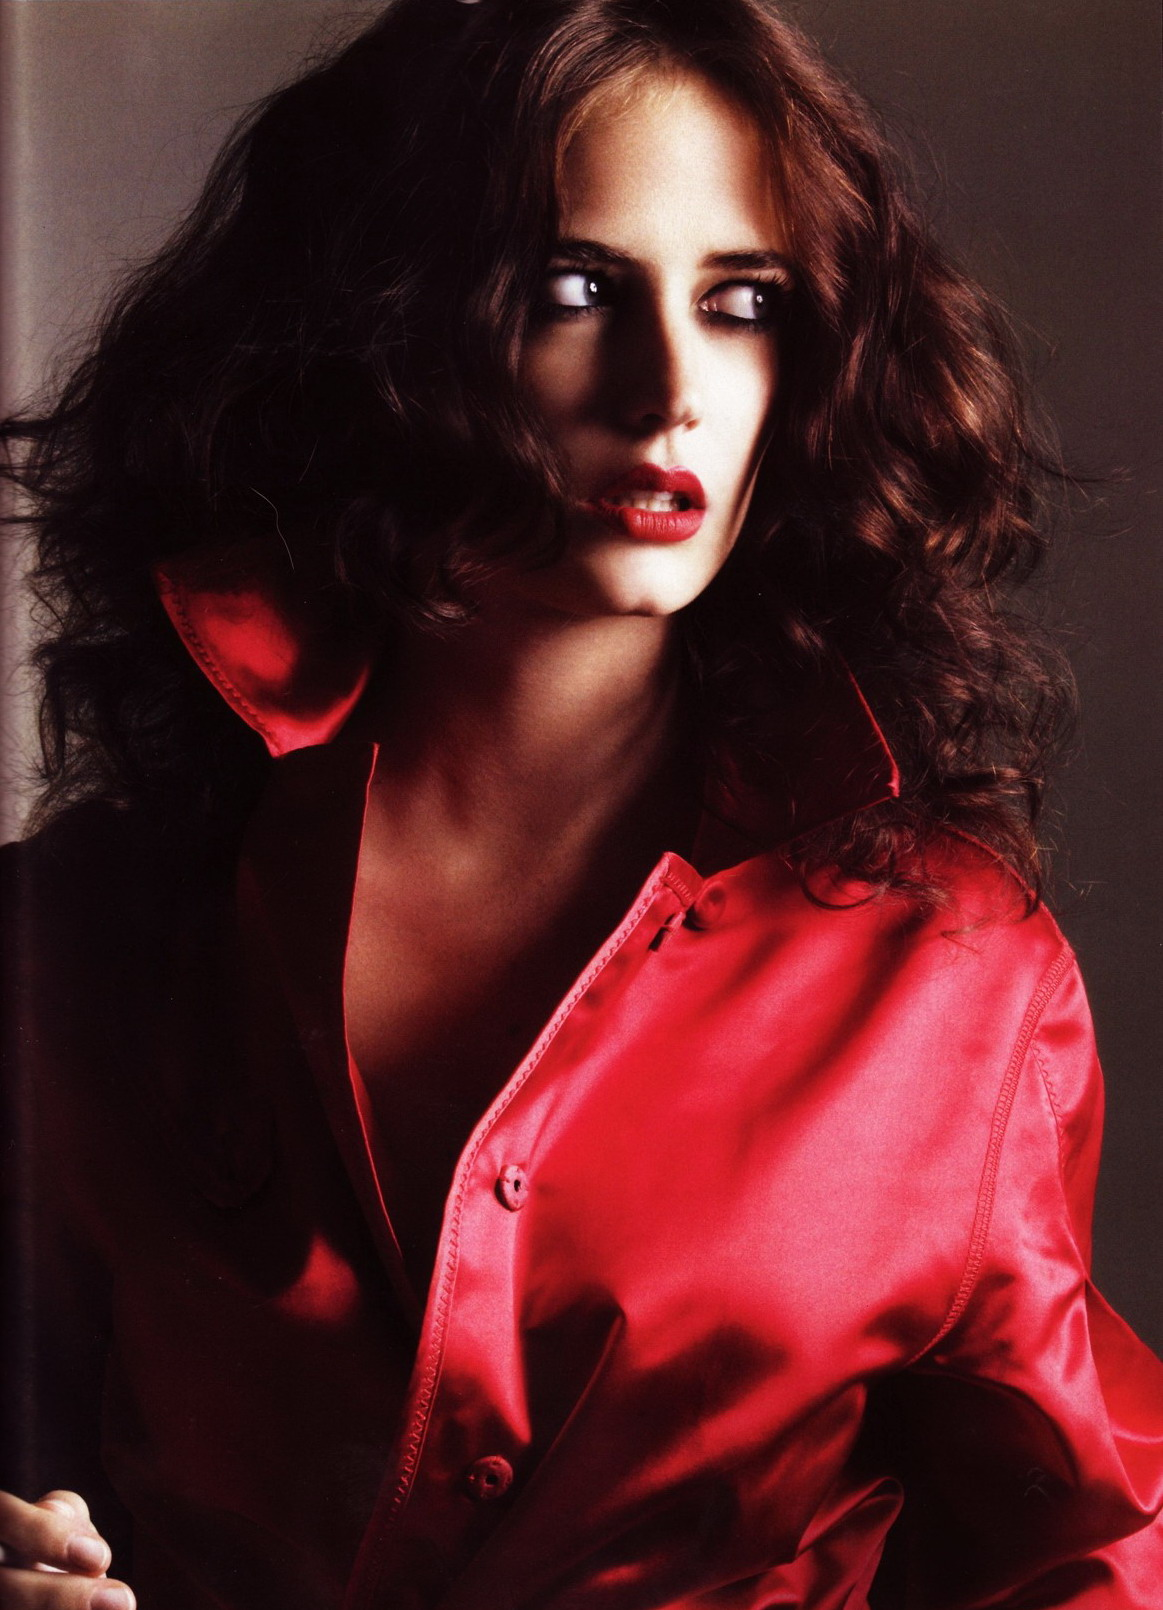 Eva Green - Eva Green Photo (244881) - Fanpop Eva Green Images